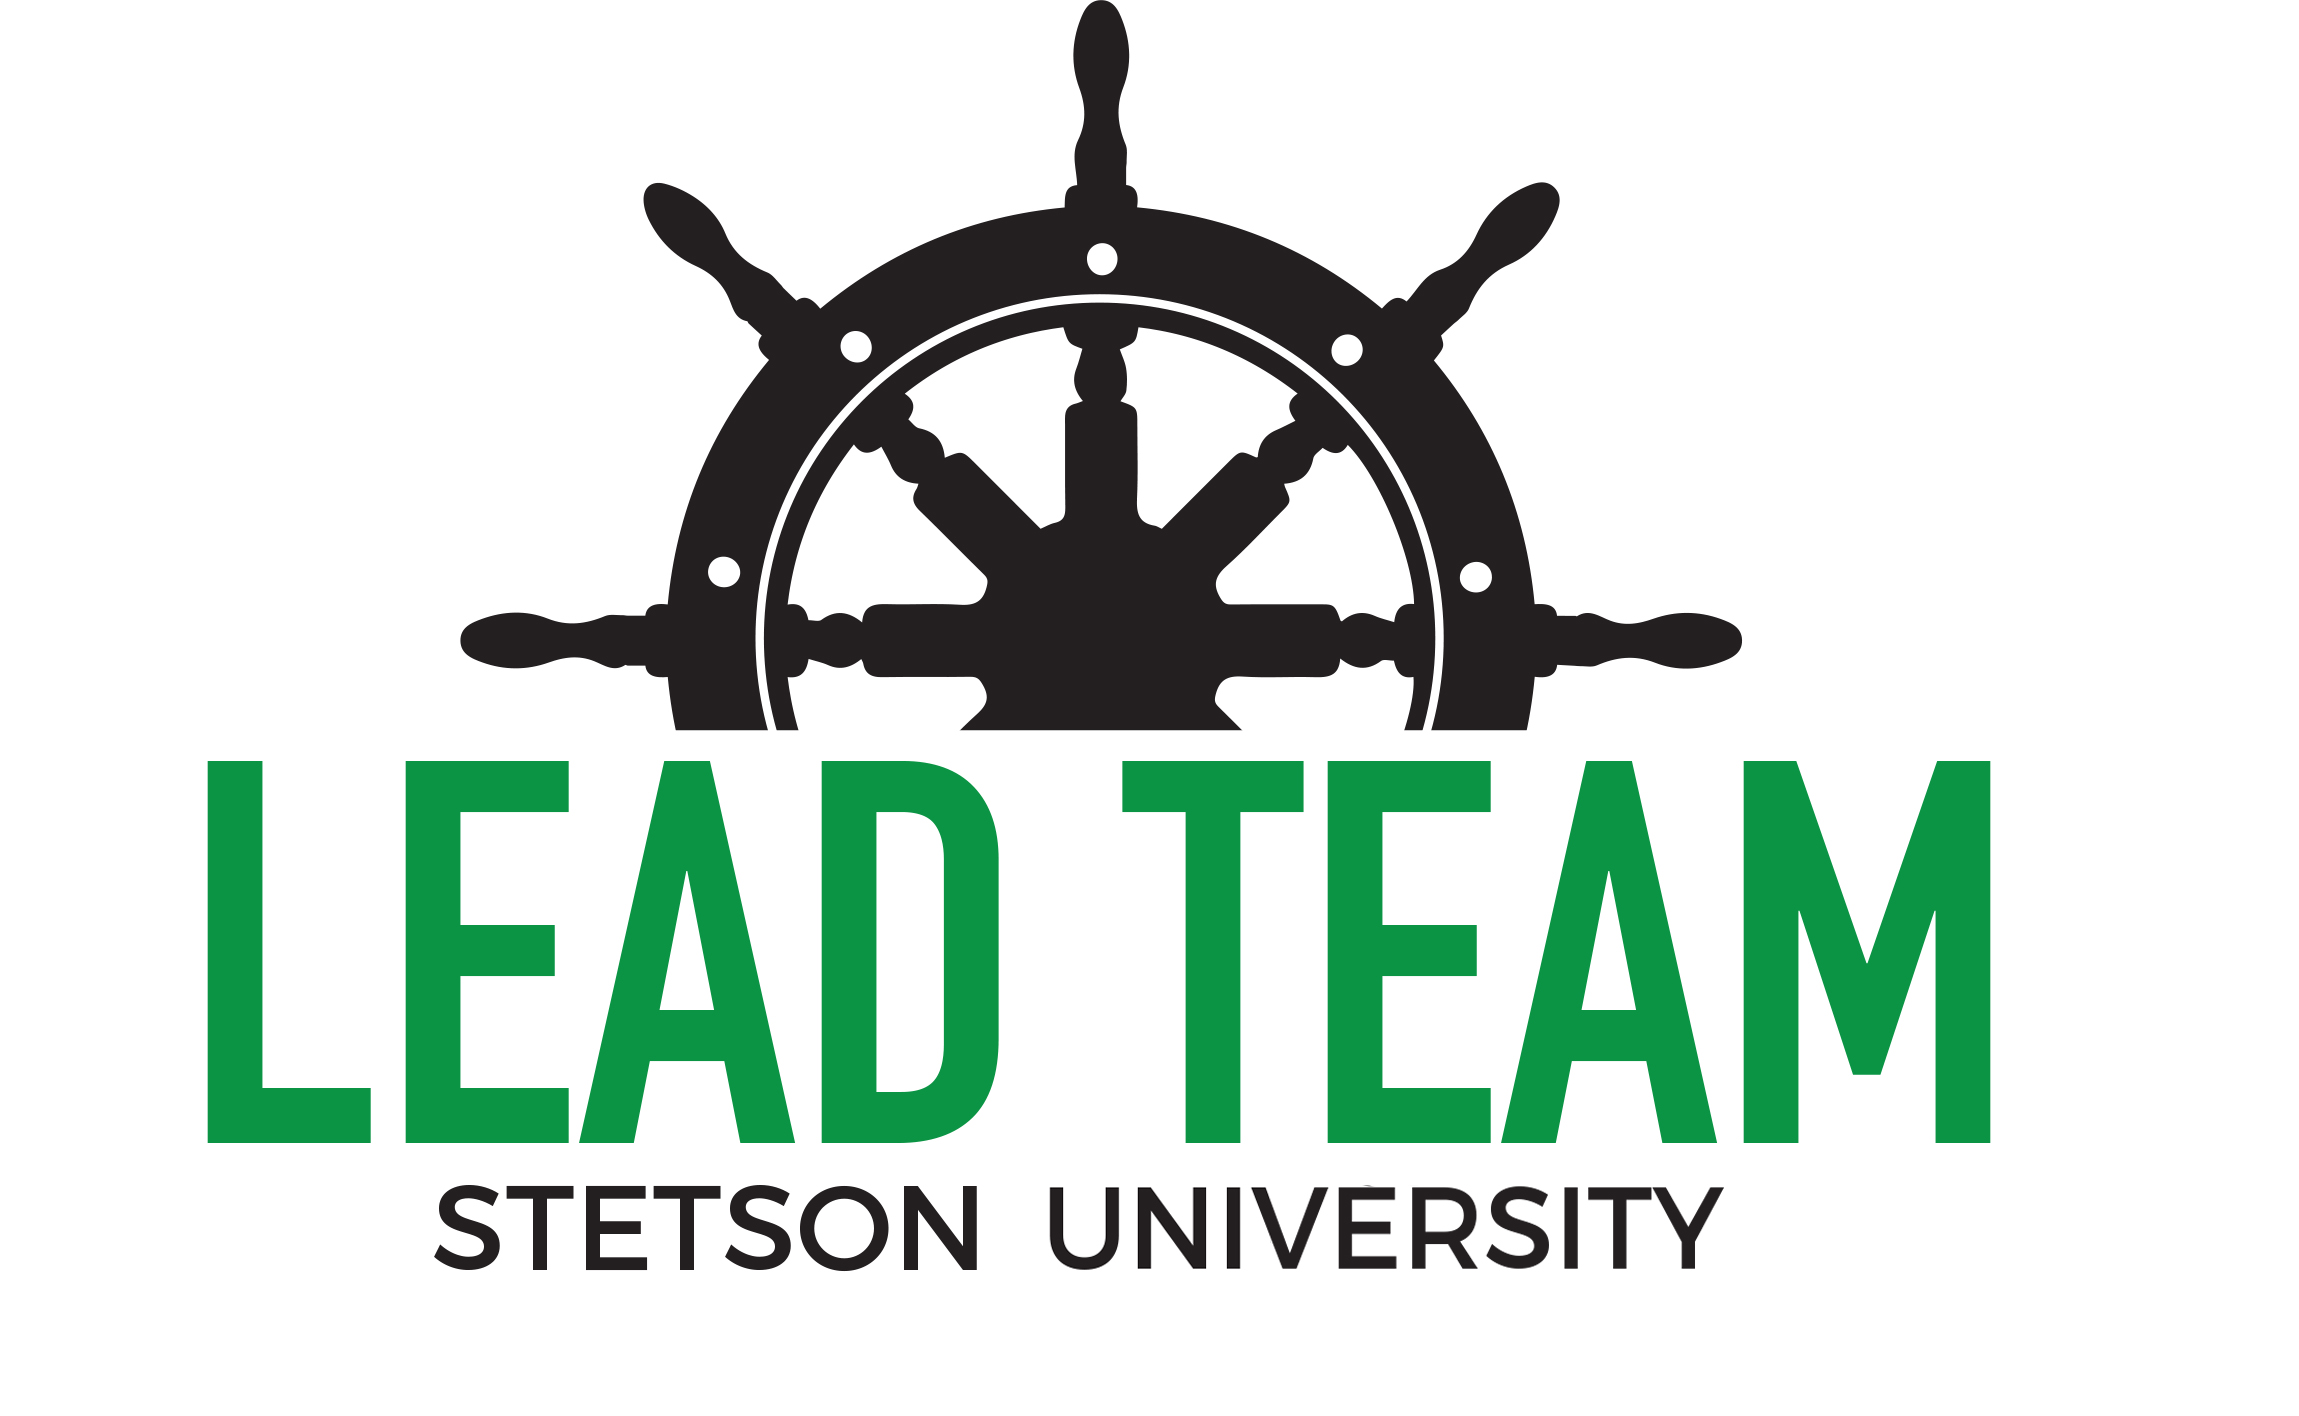 LEAD Team Logo - Ship wheel with LEAD Team written underneath